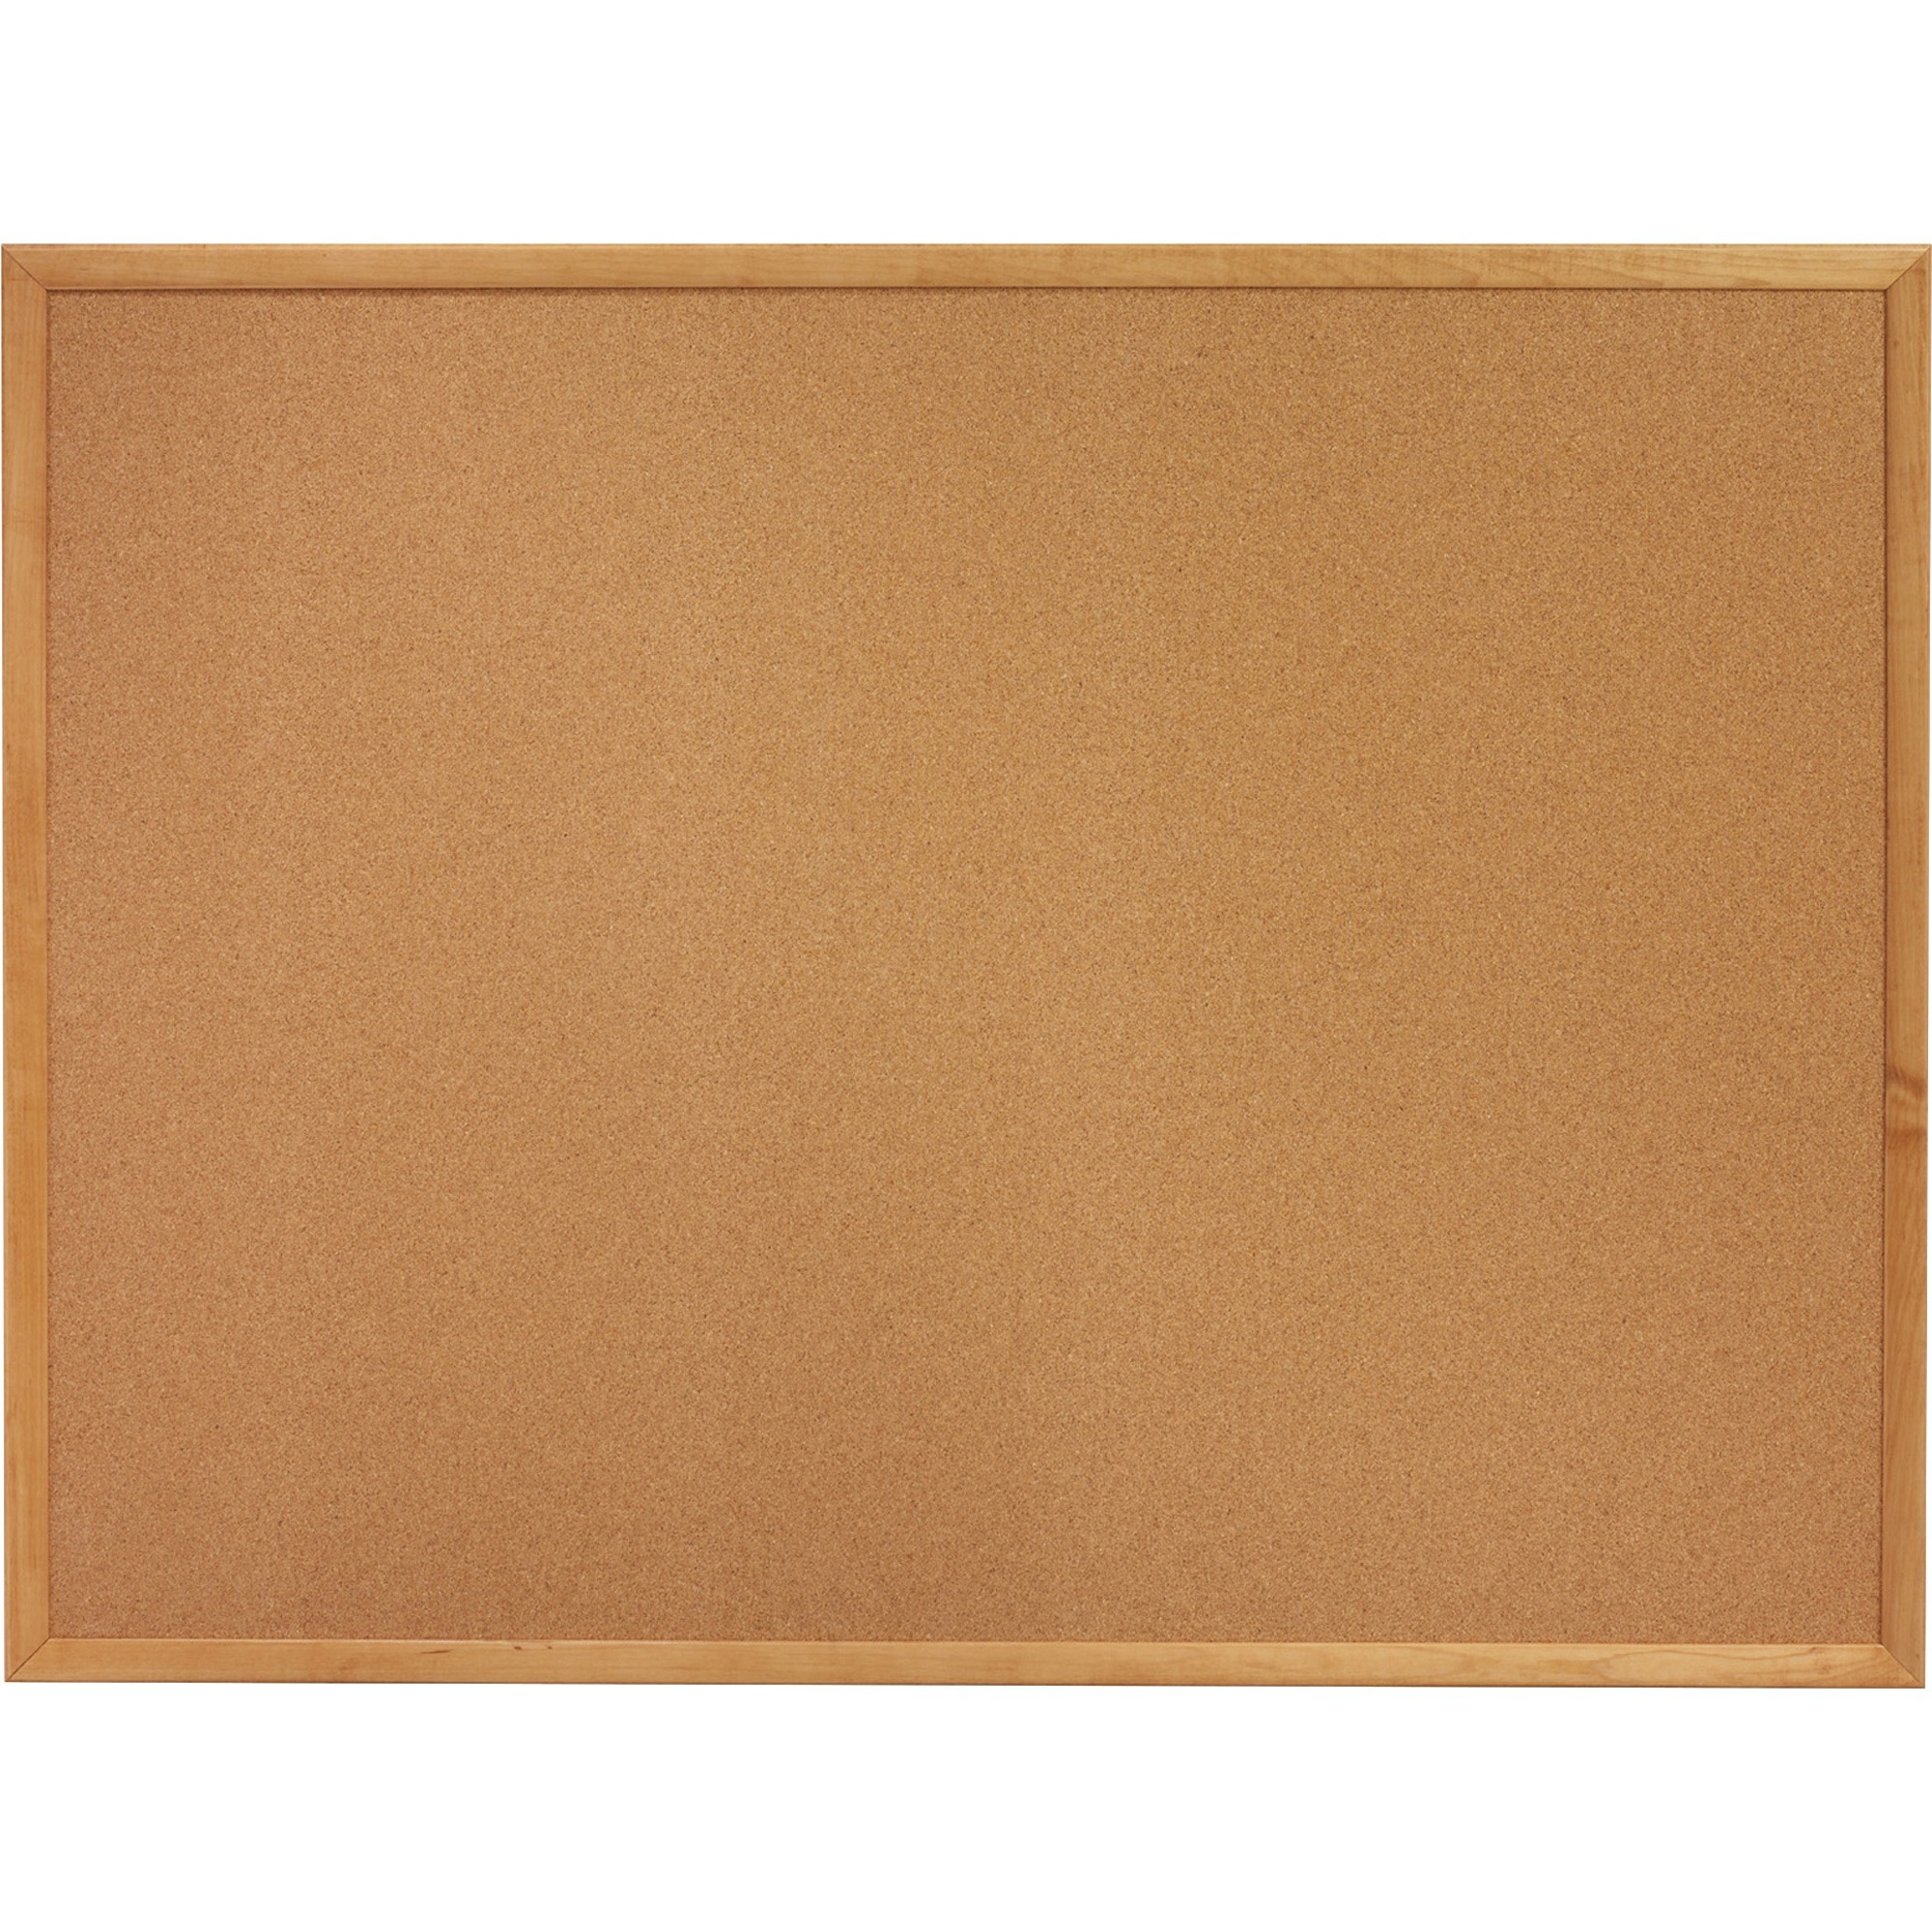 Lorell Oak Wood Frame Cork Board - 18 Height X 24 Width - Cork Surface - Long Lasting, Warp Resistant - Brown Oak Frame - 1 Each